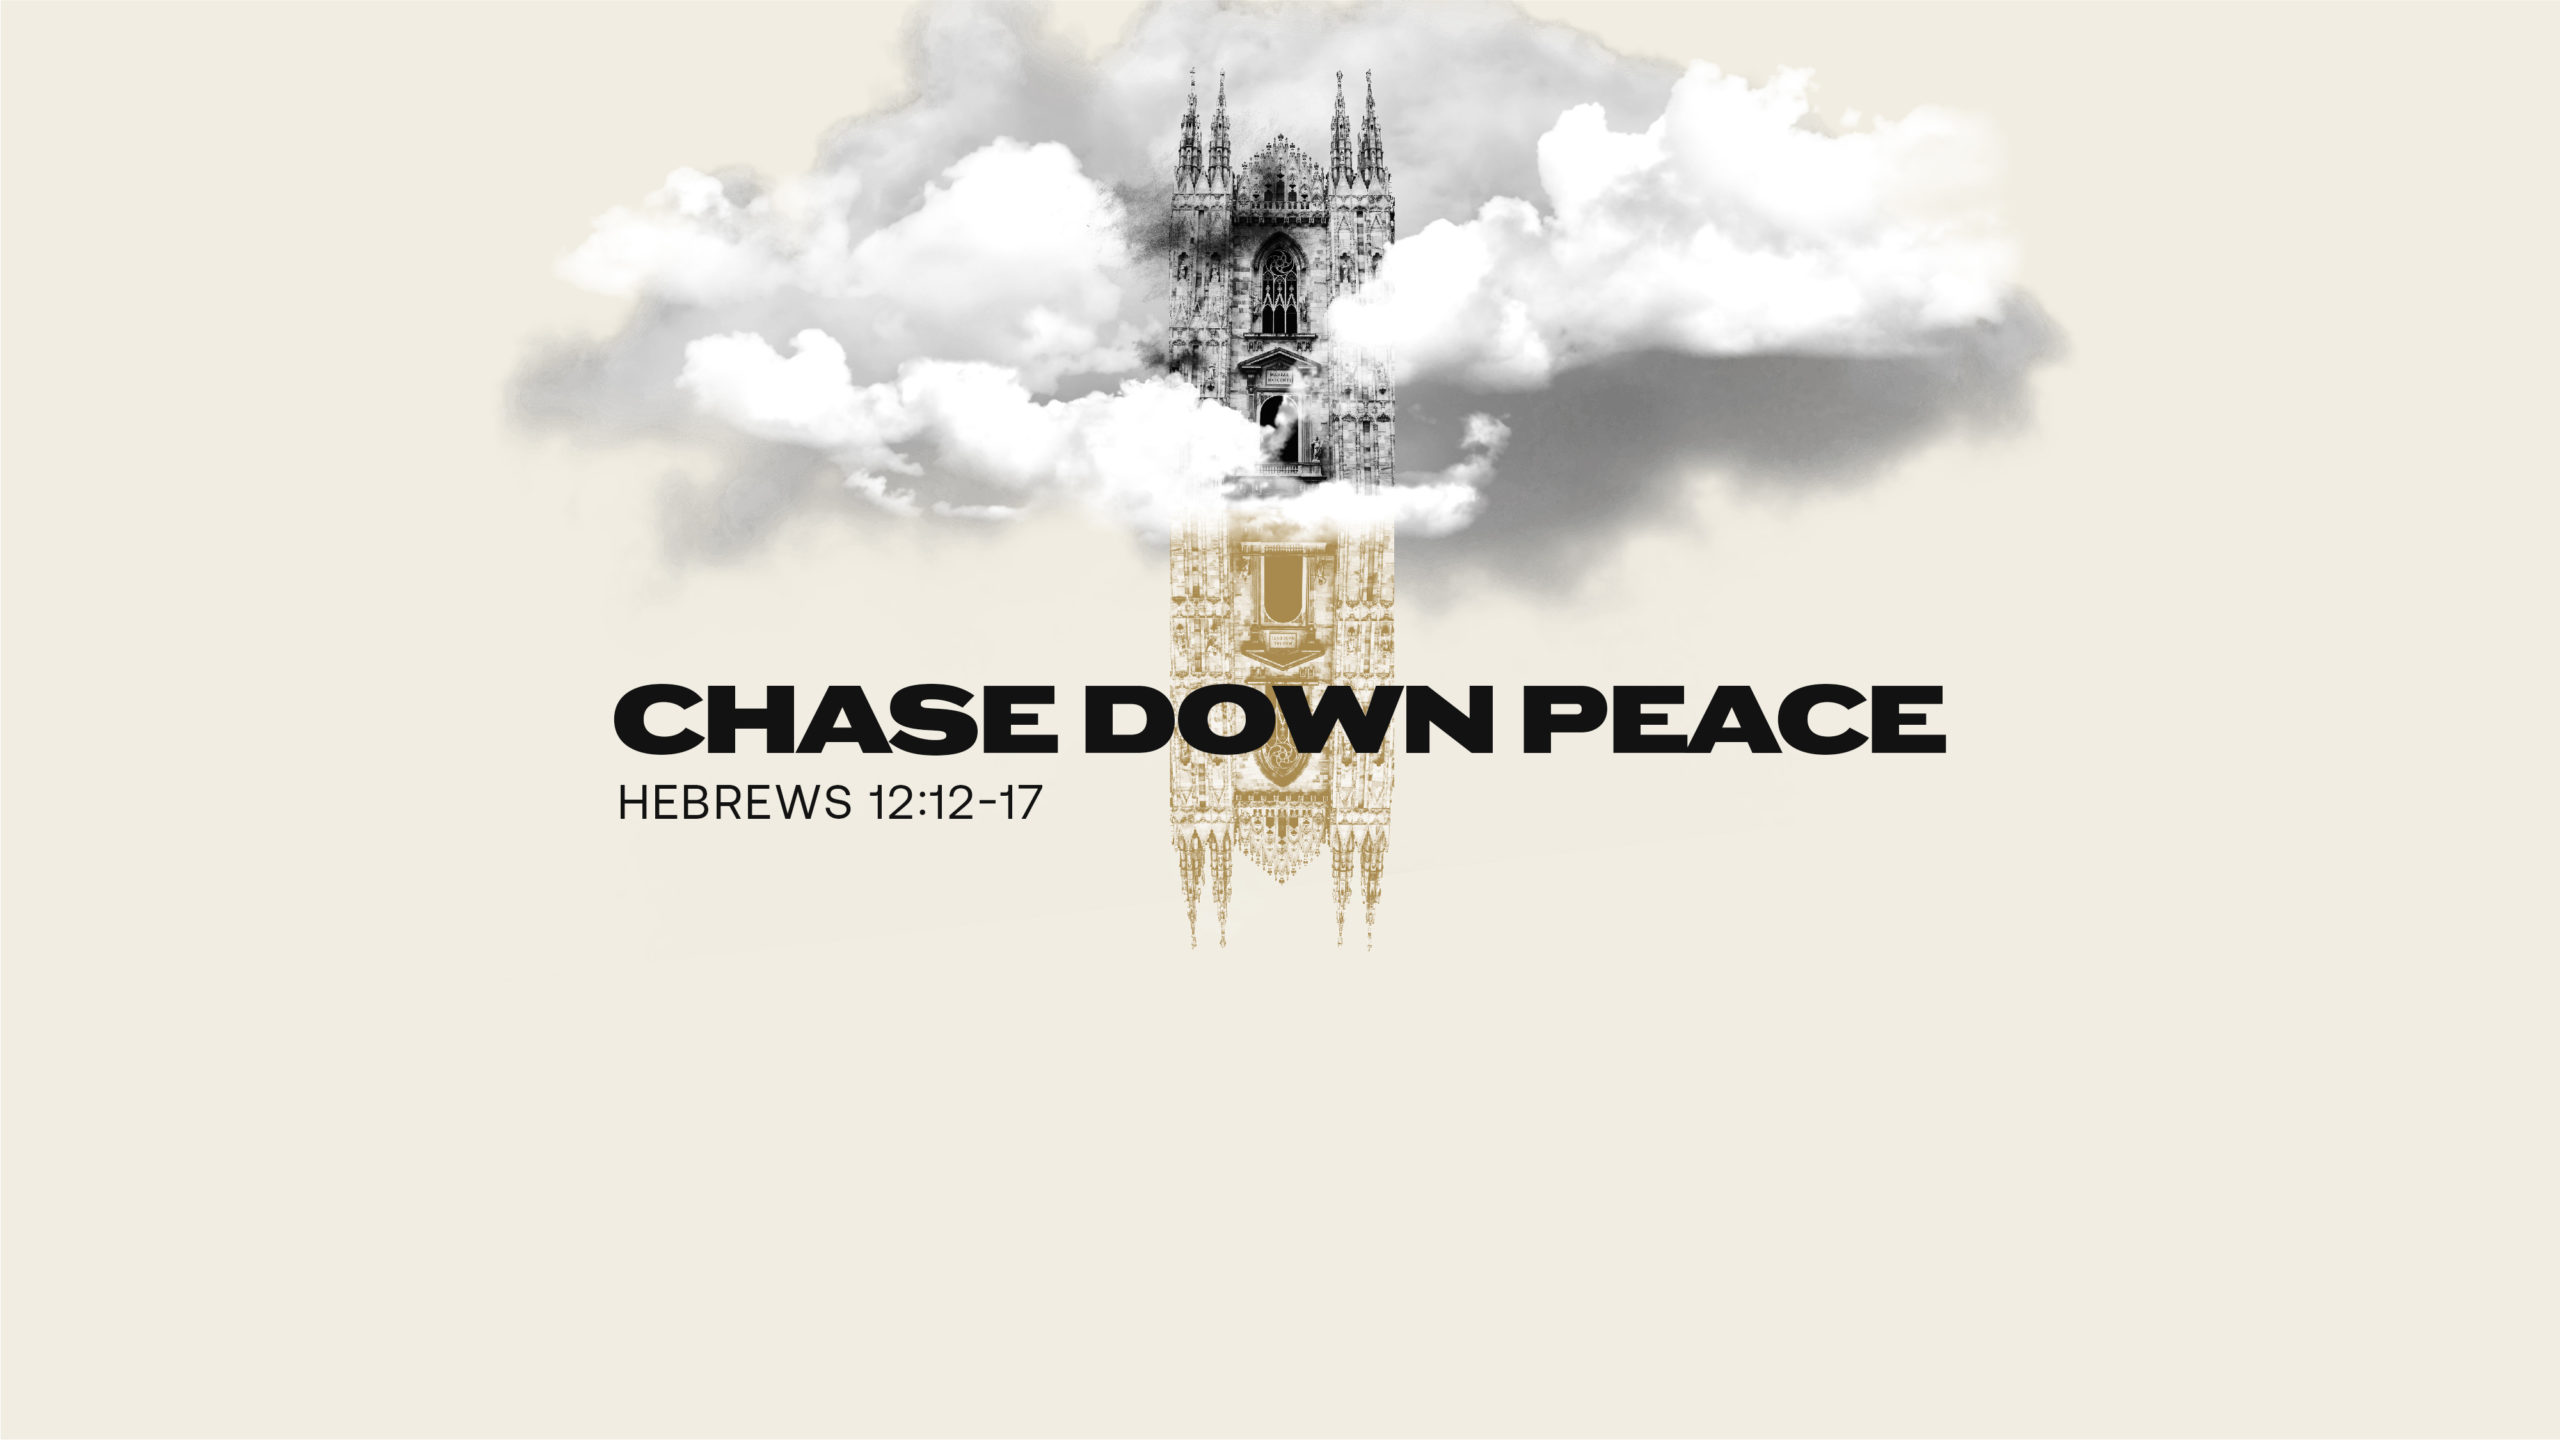 Chase Down Peace